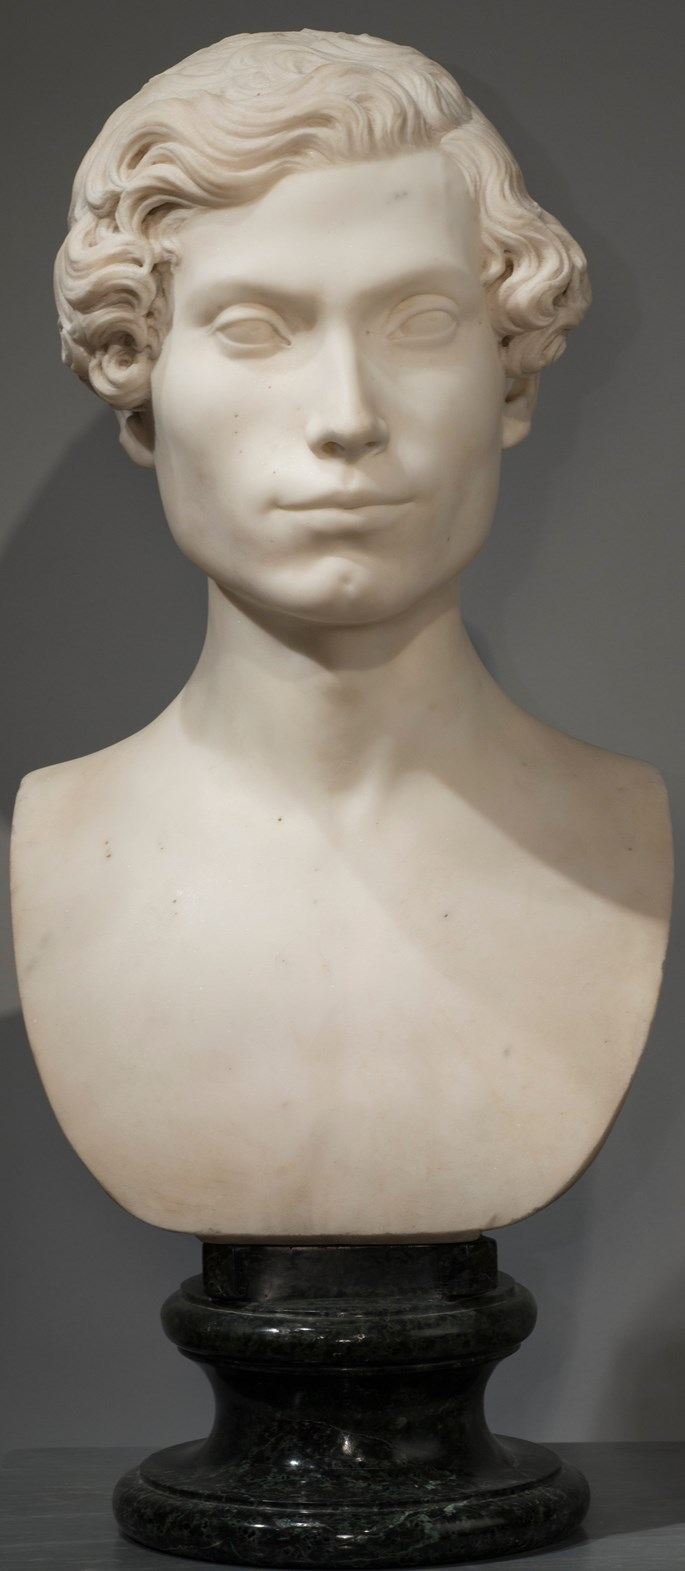 lodovico Caselli - WHITE MARBLE BUST OF NOBLEMAN, ON THE ORIGINAL VERDE ARNO MARBLE BASE | MasterArt